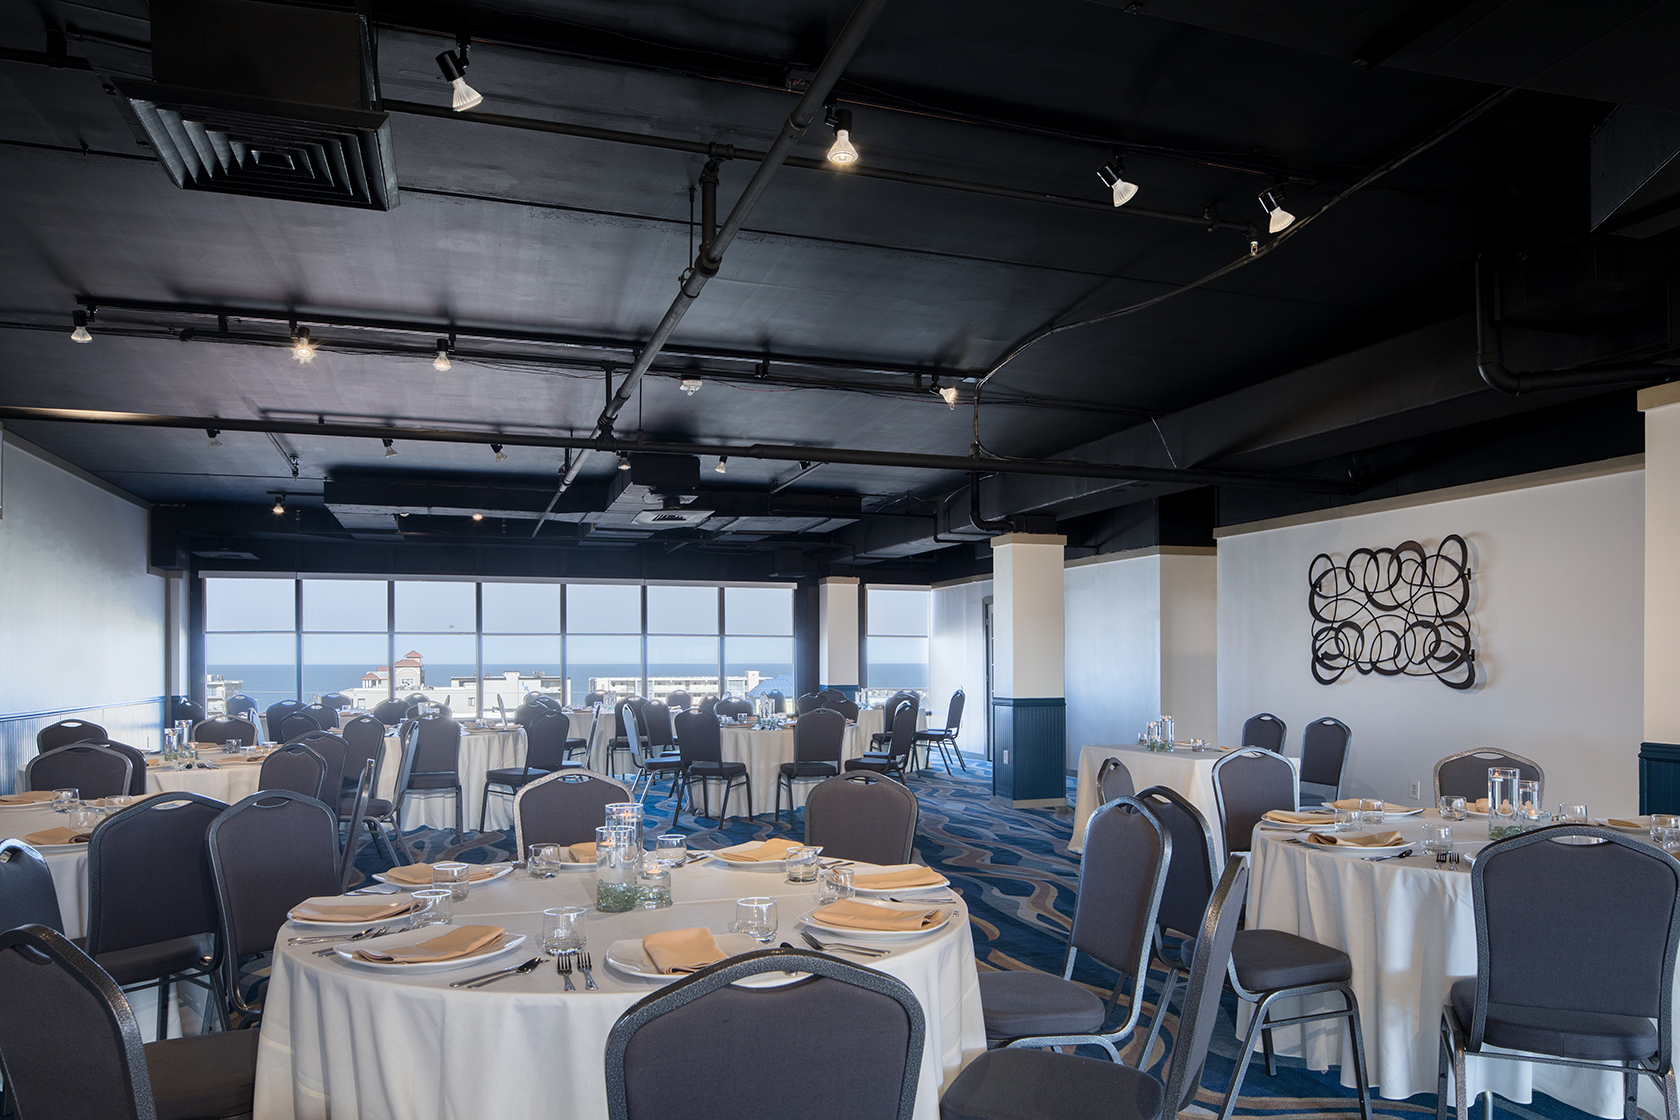 The Fenwick Room meeting space housing several round tables with white table clothes and formal dinner ware. Large glass wall opens to ocean view